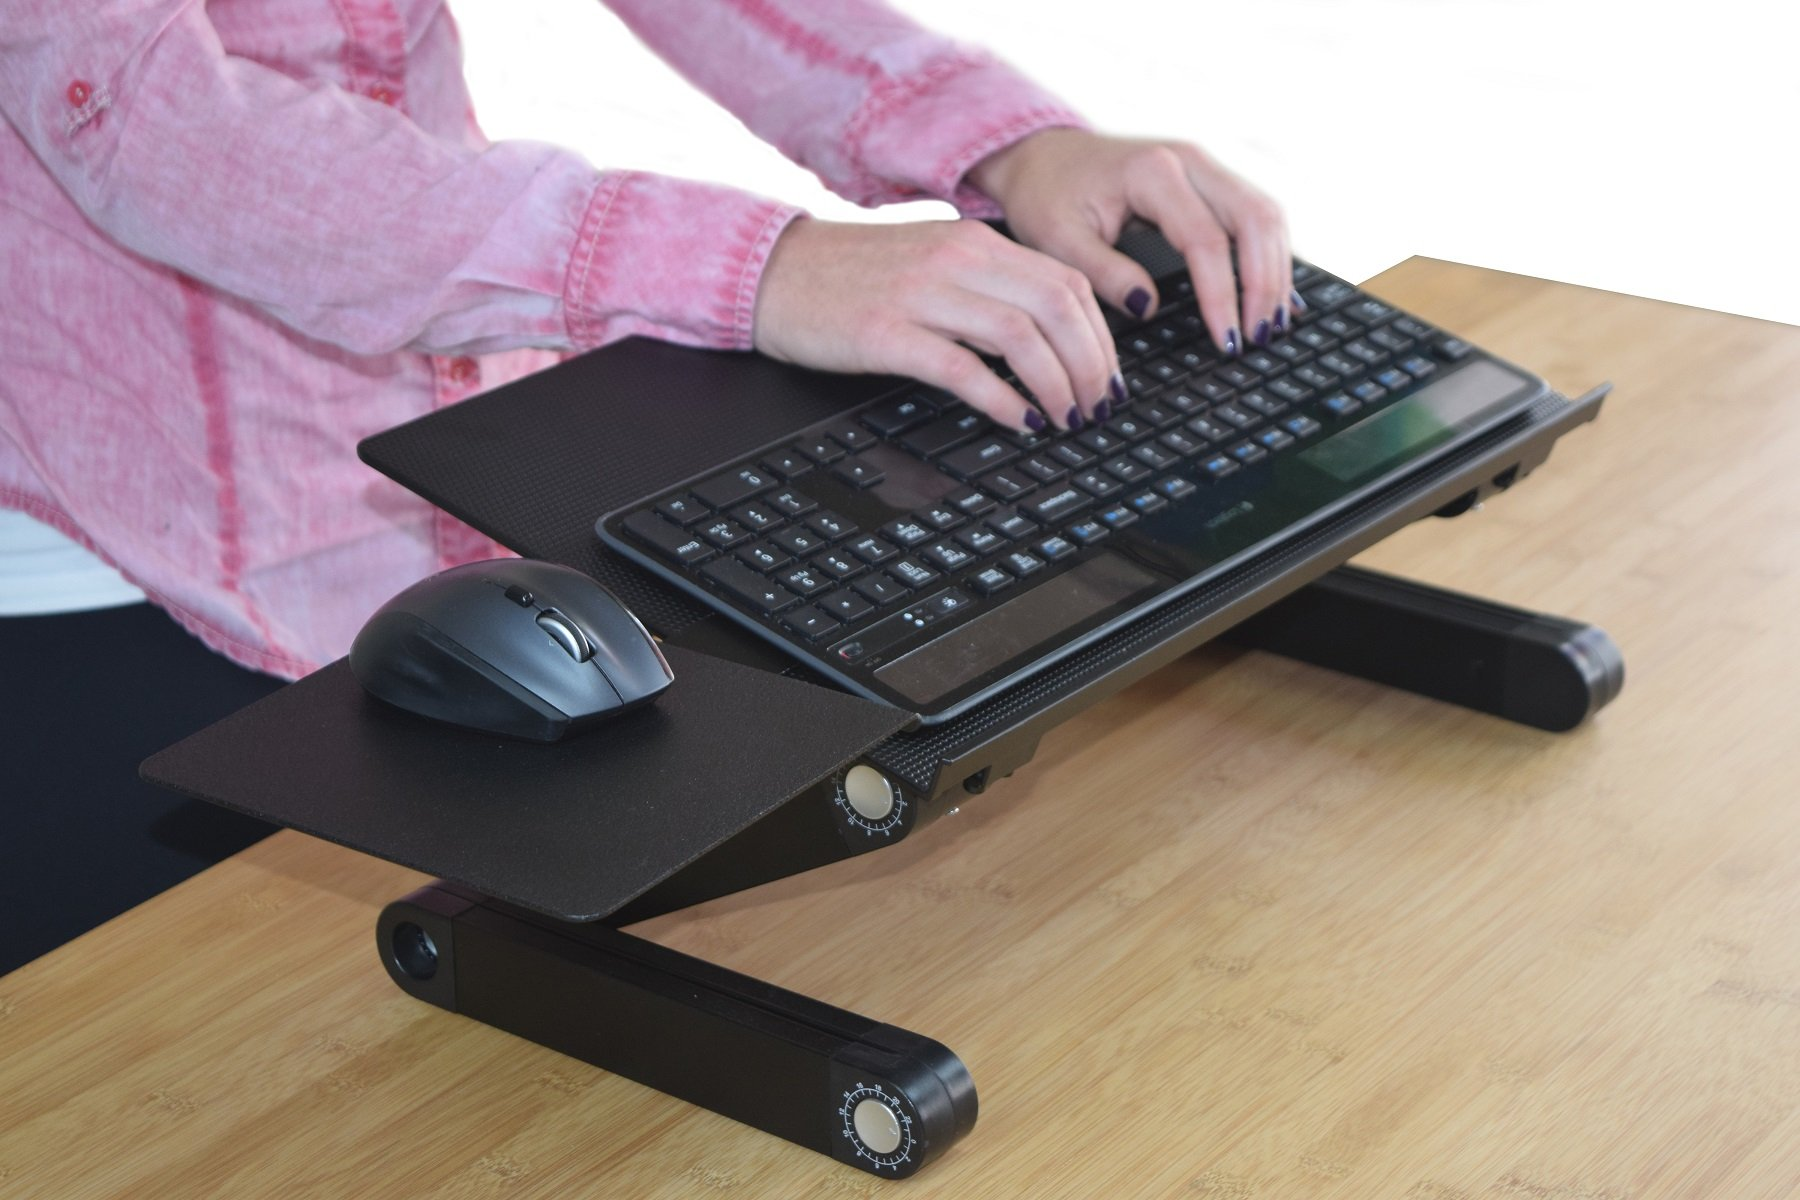 Uncaged Ergonomics (WEKTb) WorkEZ Keyboard Tray Stand Up Adjustable Height & Angle Ergonomic Computer Keyboard Riser For Standing. Portable, Negative Tilt Ambidextrous Mouse Pad